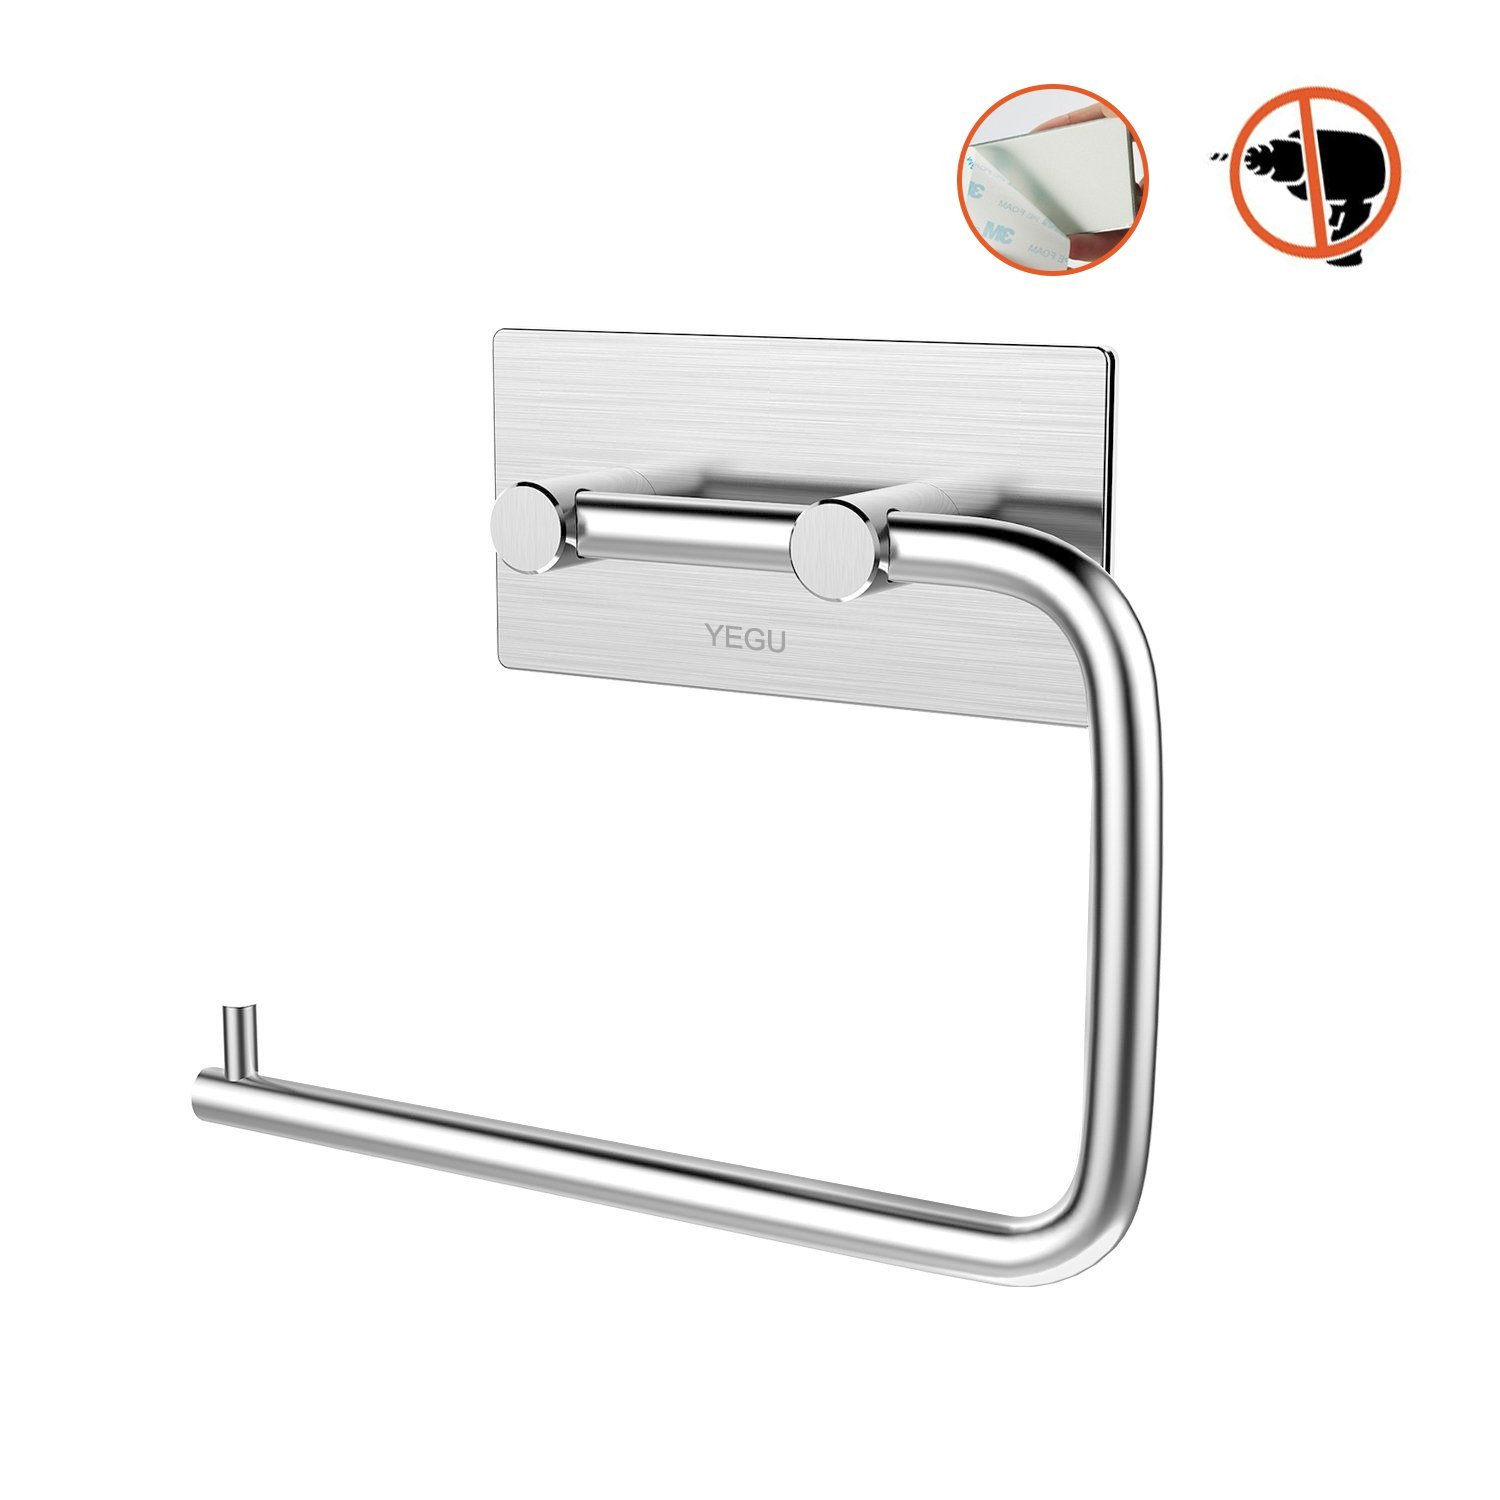 YEGU Self Adhesive Coat Hooks, Brushed Stainless Steel Towel Holder Wall Mounted Coat Rack Waterproof Oilproof Rustproof Heavy Duty Contemporary Style for Kitchen Bathrooms Lavatory Closets, 4 Pack